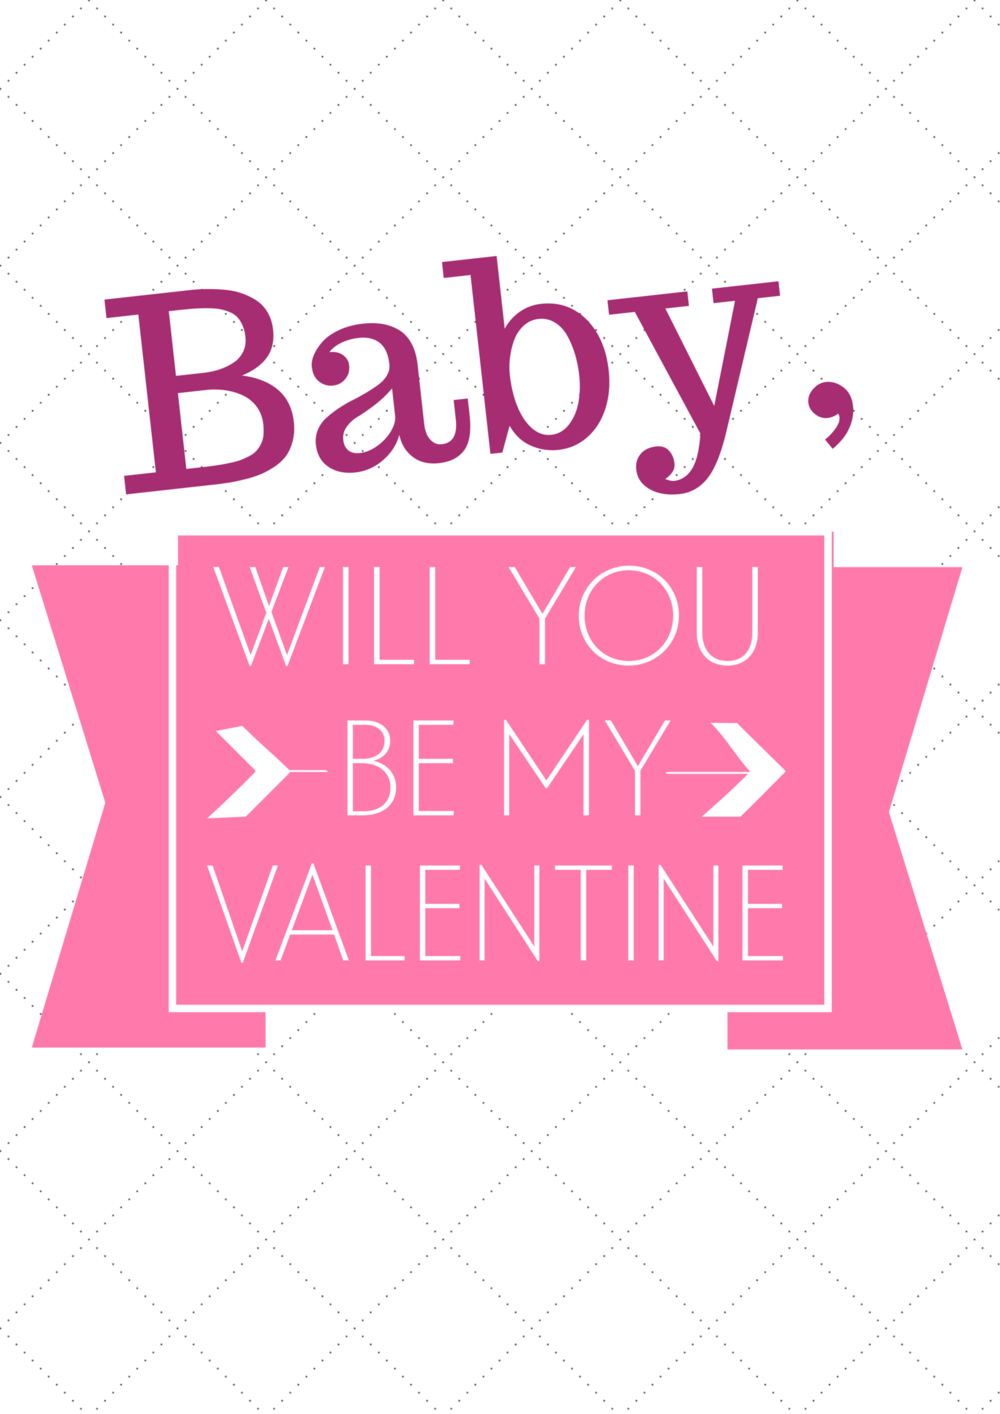 Baby will you be my valentine Printable sign or wall art